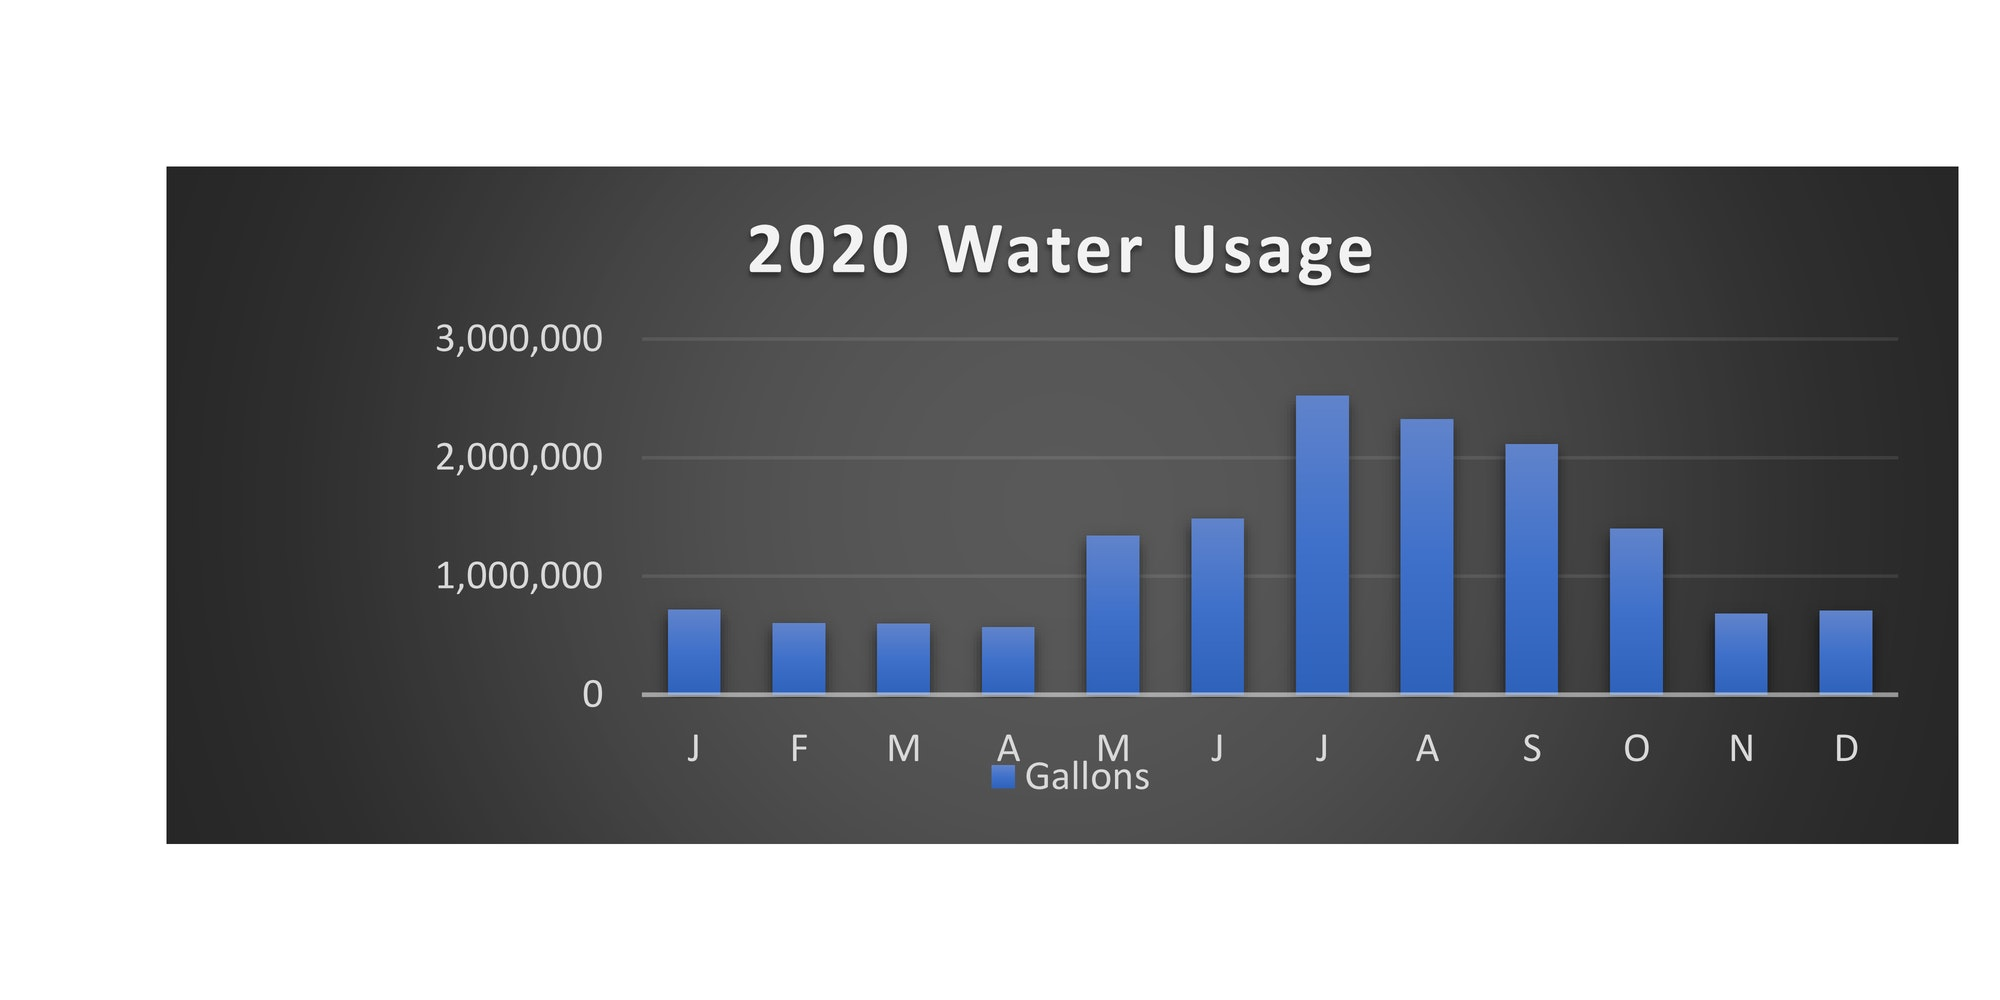 may contain a graph of the water usage for 2020